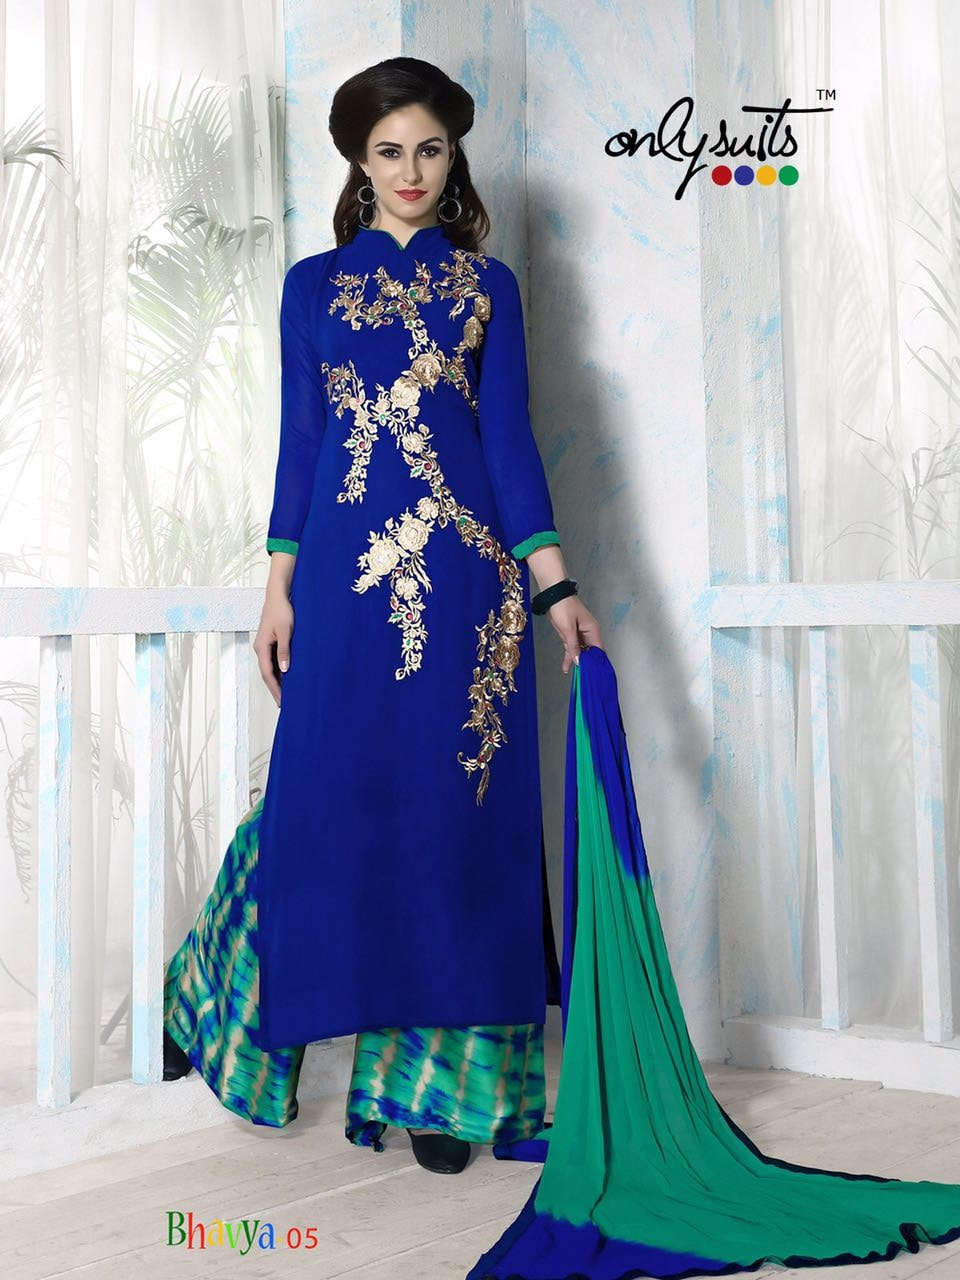 Designer Embroidered Salwar Kameez Material  Top - Georgette with Embroidery n Santoon Inner Bottom - Plazzo Material in Satin Digital Print. Dupatta - Pure Chiffon with Lace Border  Ready to Ship  Price @1699/- Free Shipping All Over India  #salwarkameez #onlineshopping #onlineshoppingindia #ethnic-wear #plazzo_suits #designer-wear #partylook #partywear #thelabelbazaar #punjabisuit #bollywoodfashion #bollywoodactress #bollywoodstyle #ethnic #exclusively